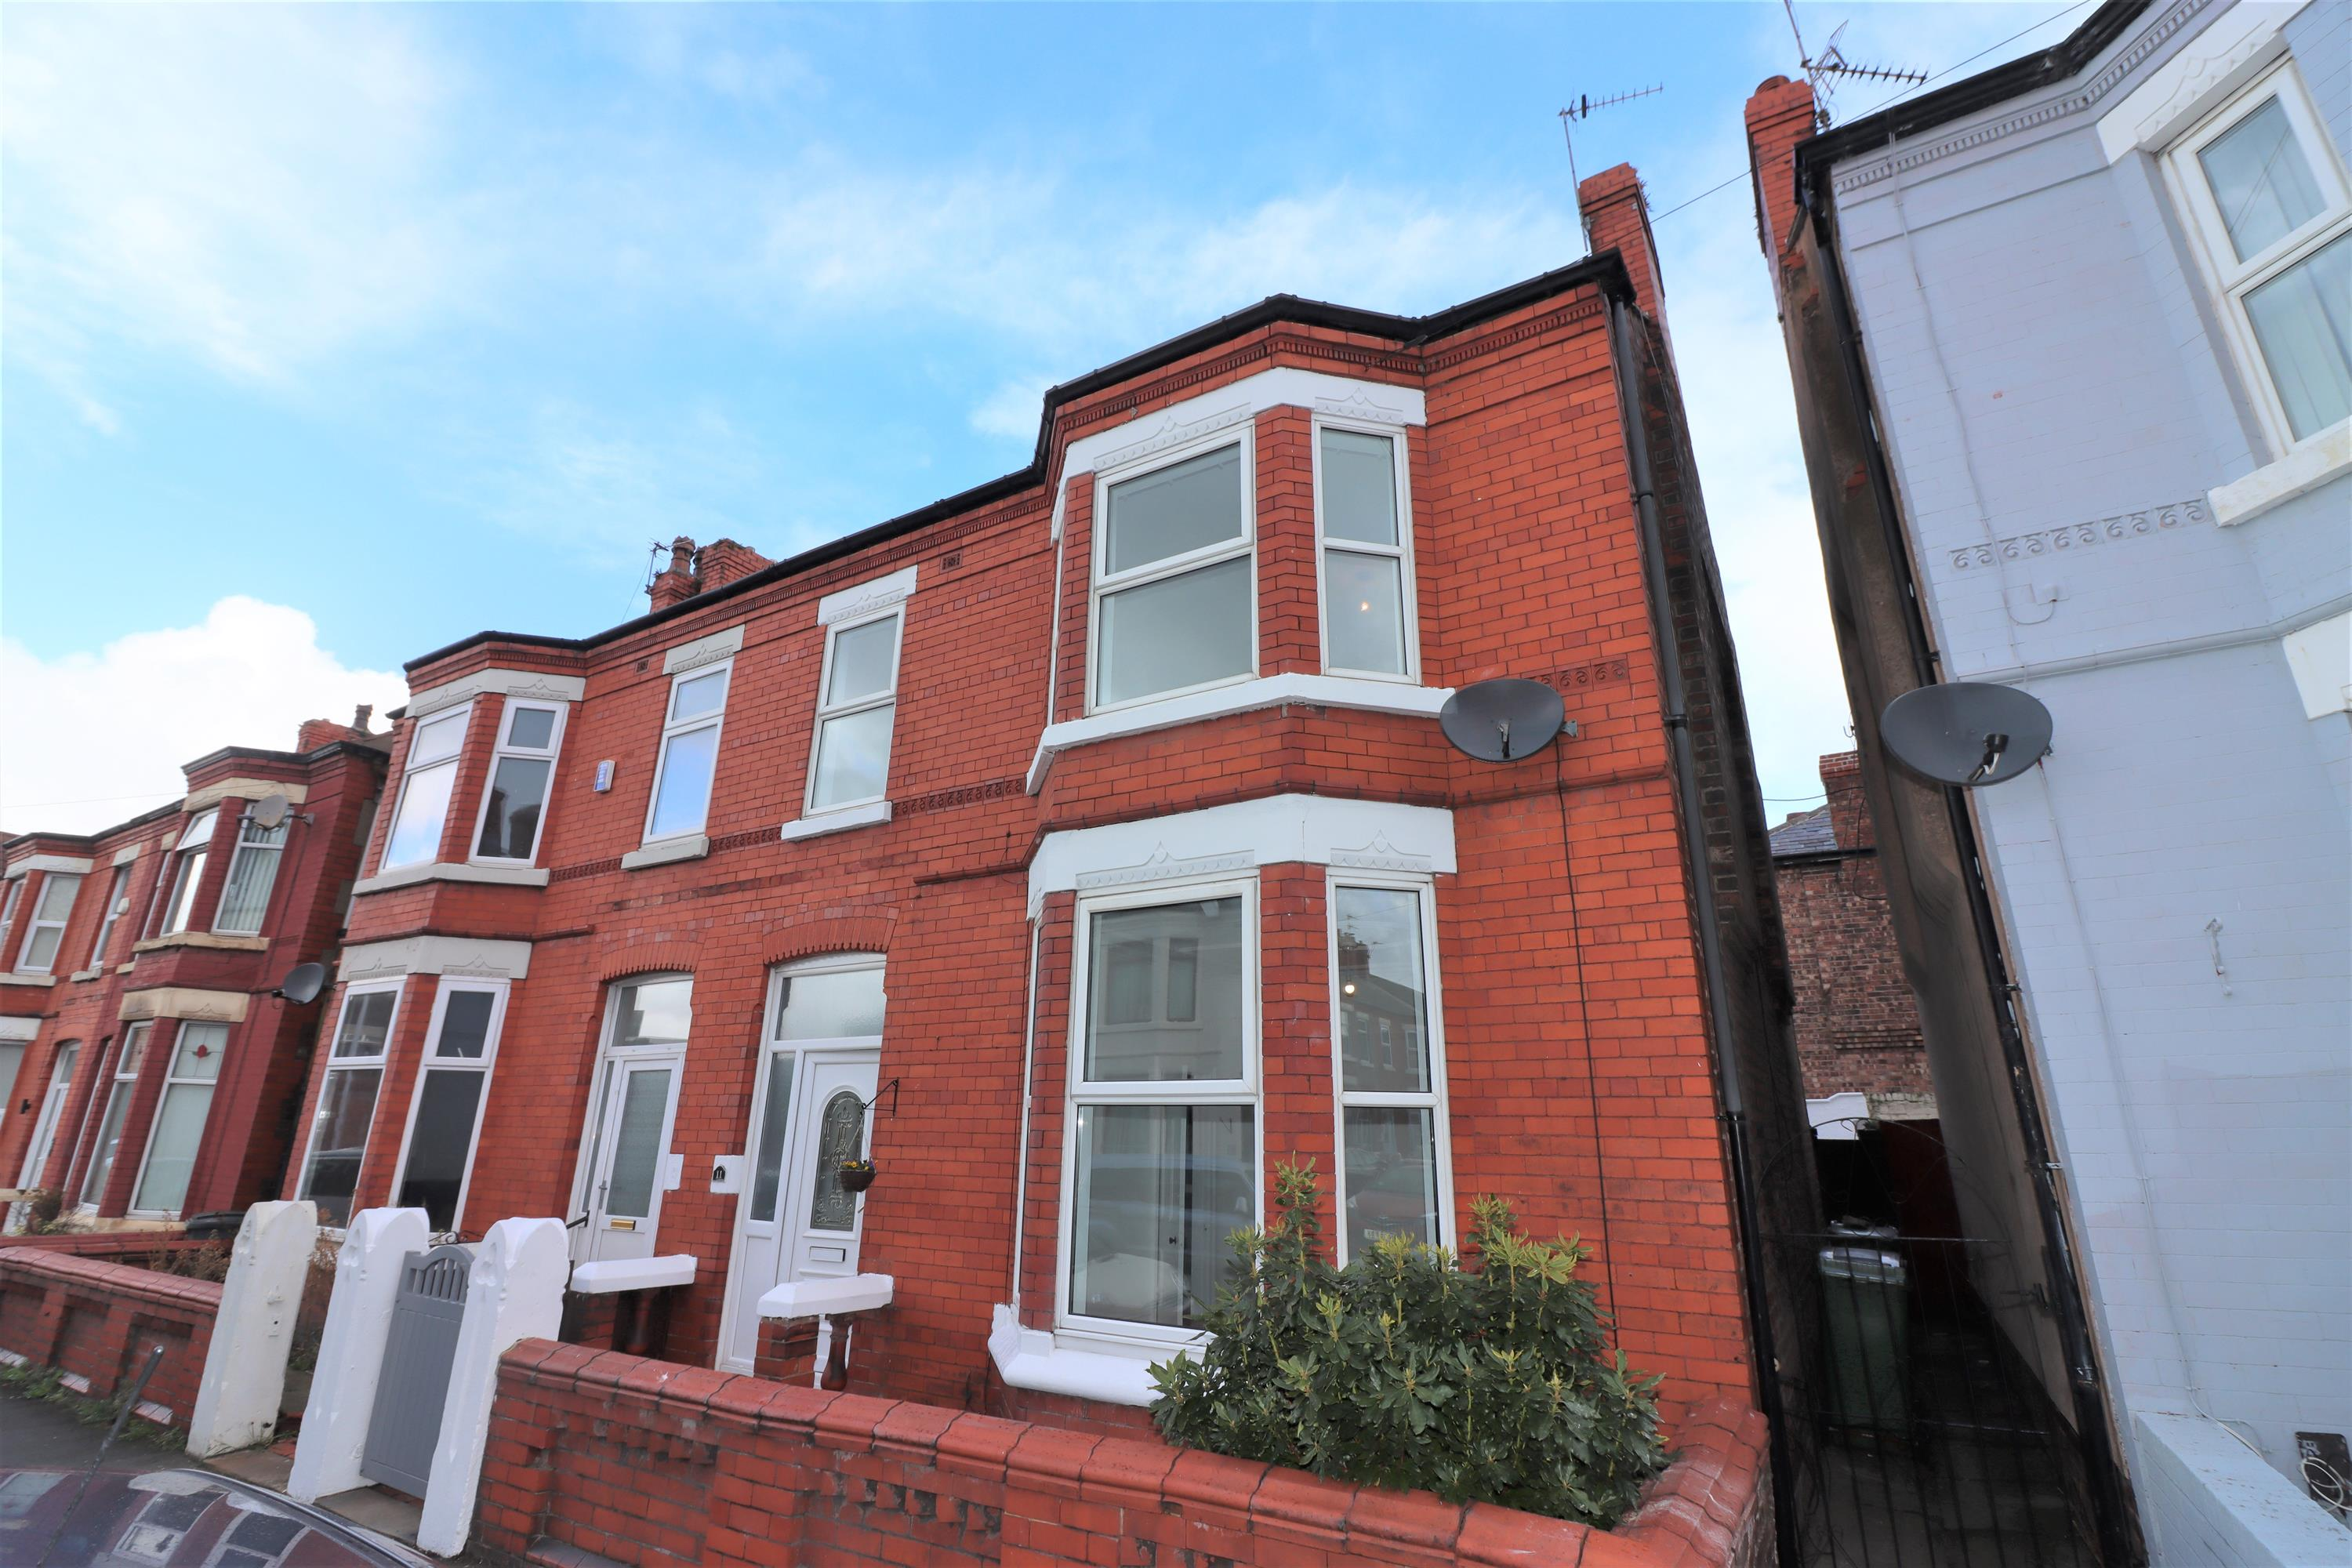 Newell Road, Wallasey, CH44 1AD